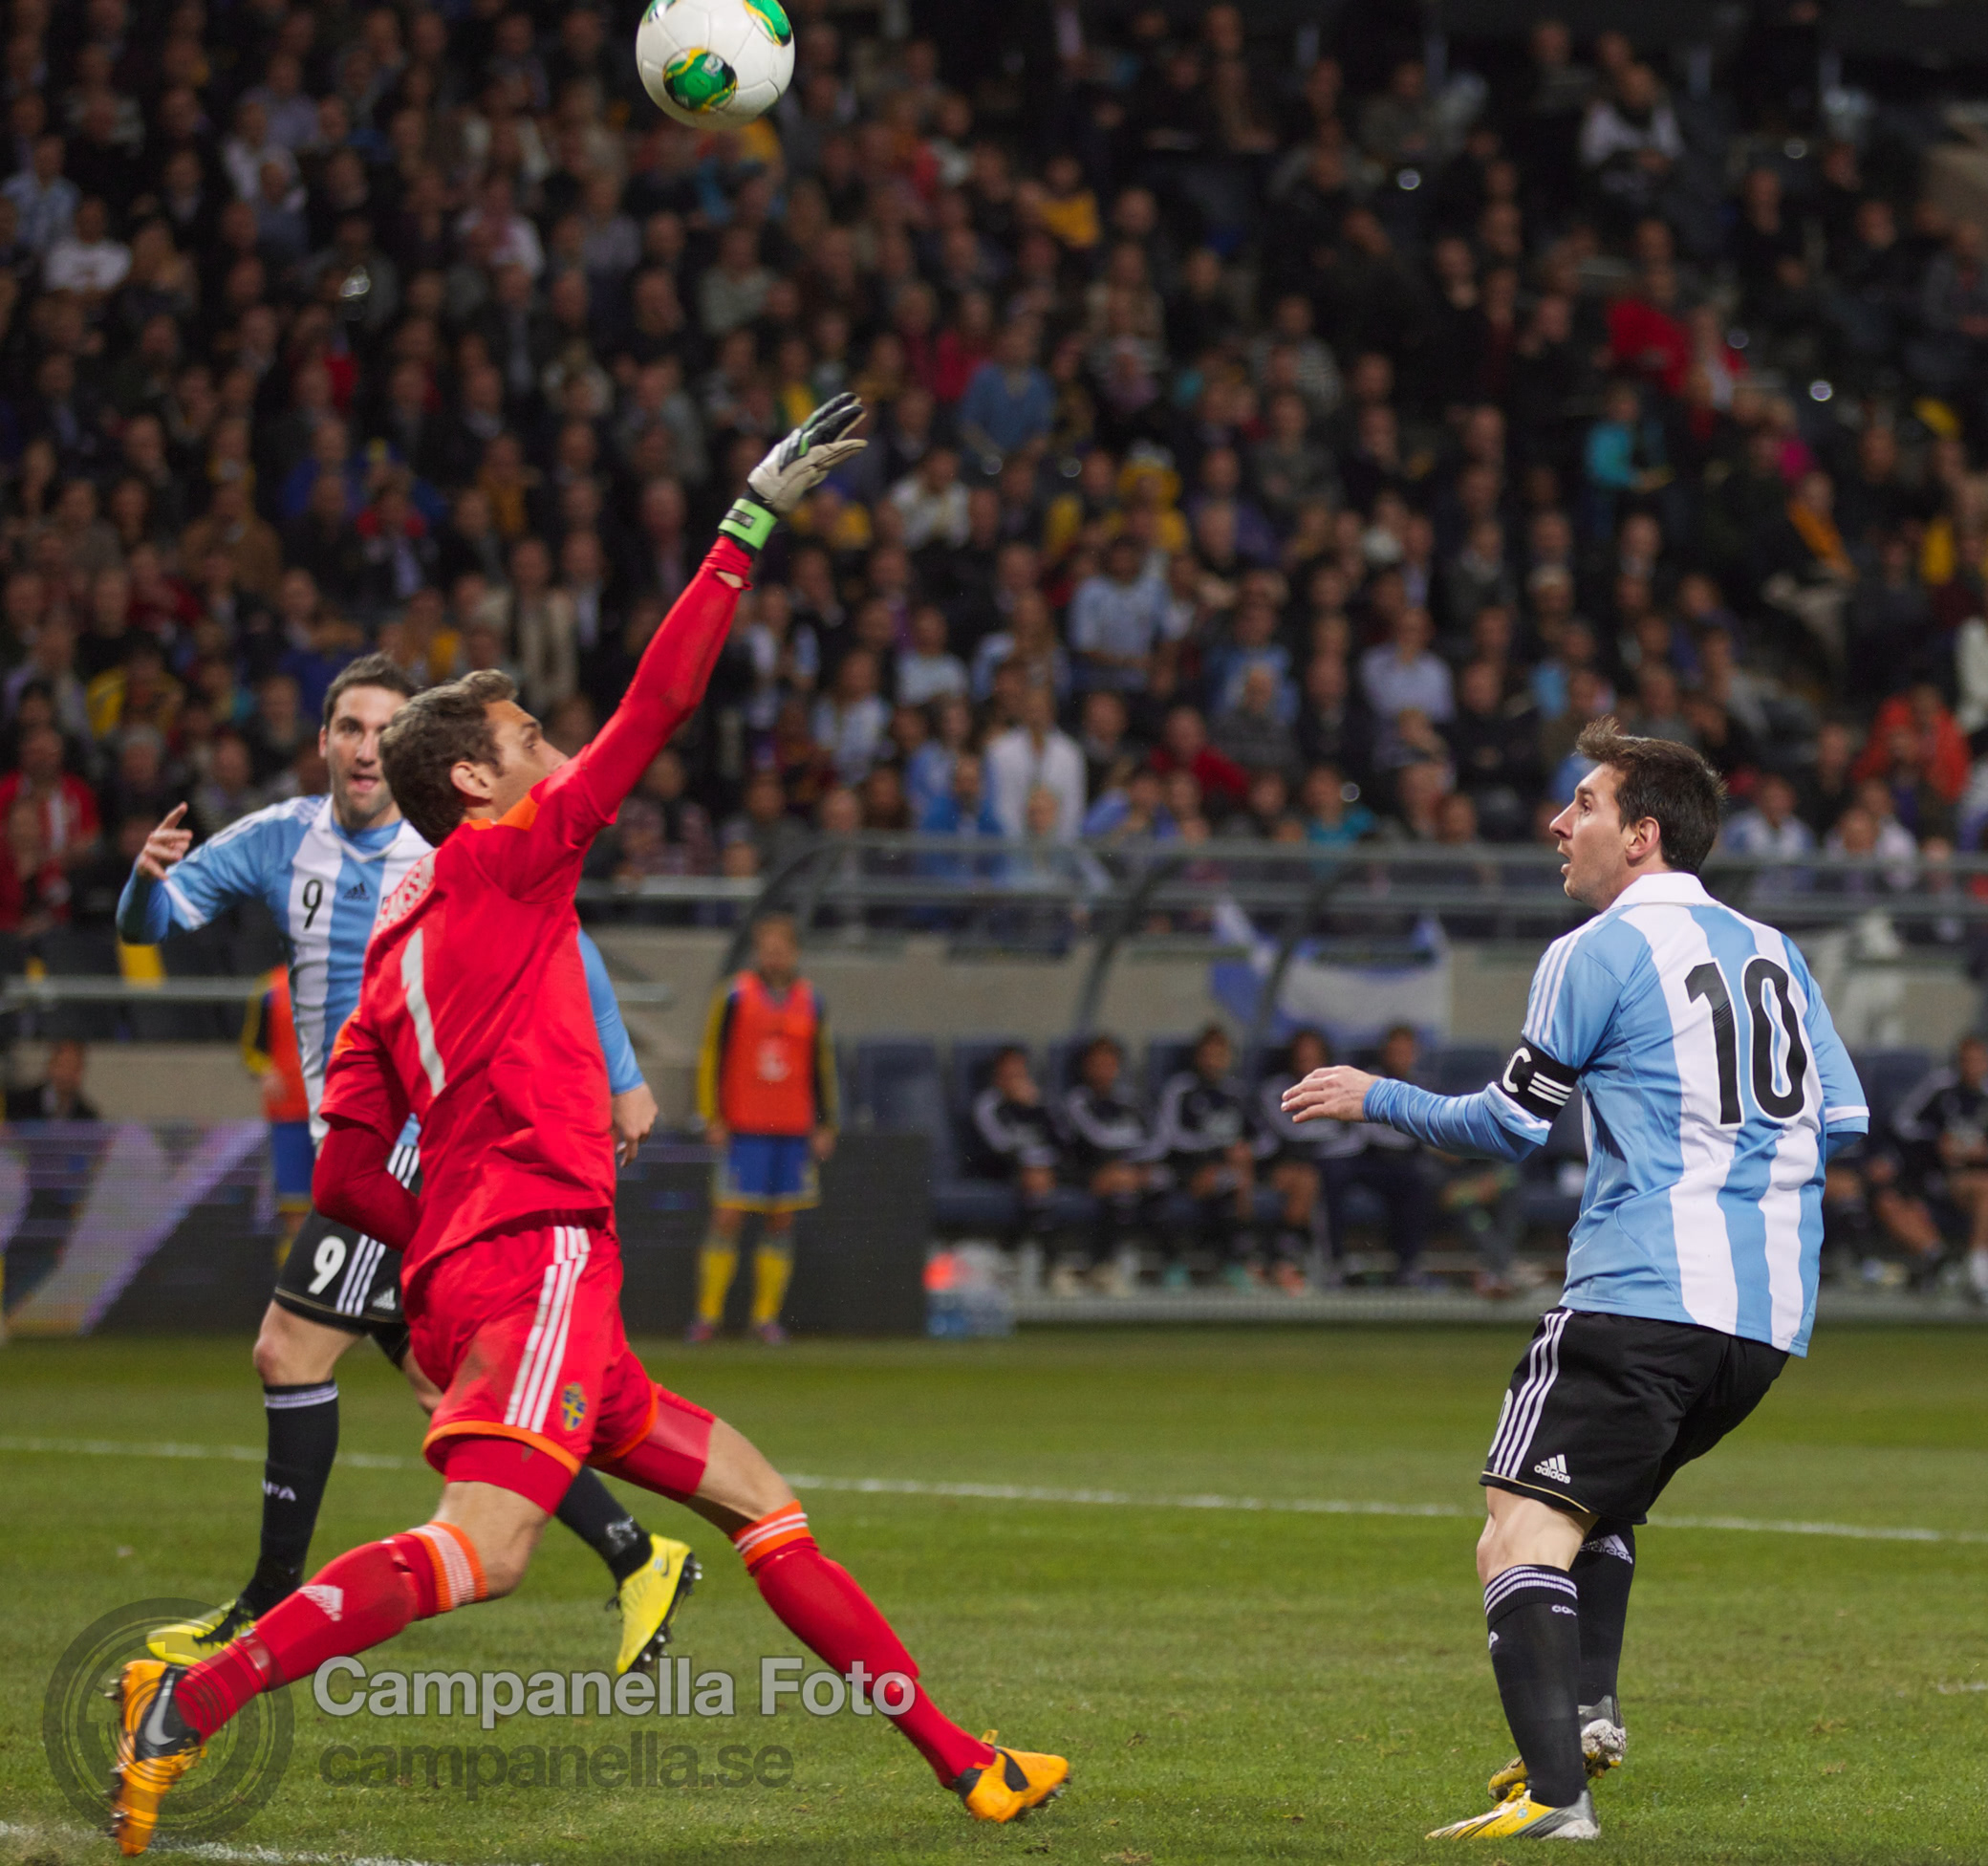 Sweden takes on Argentina - 25 of 35